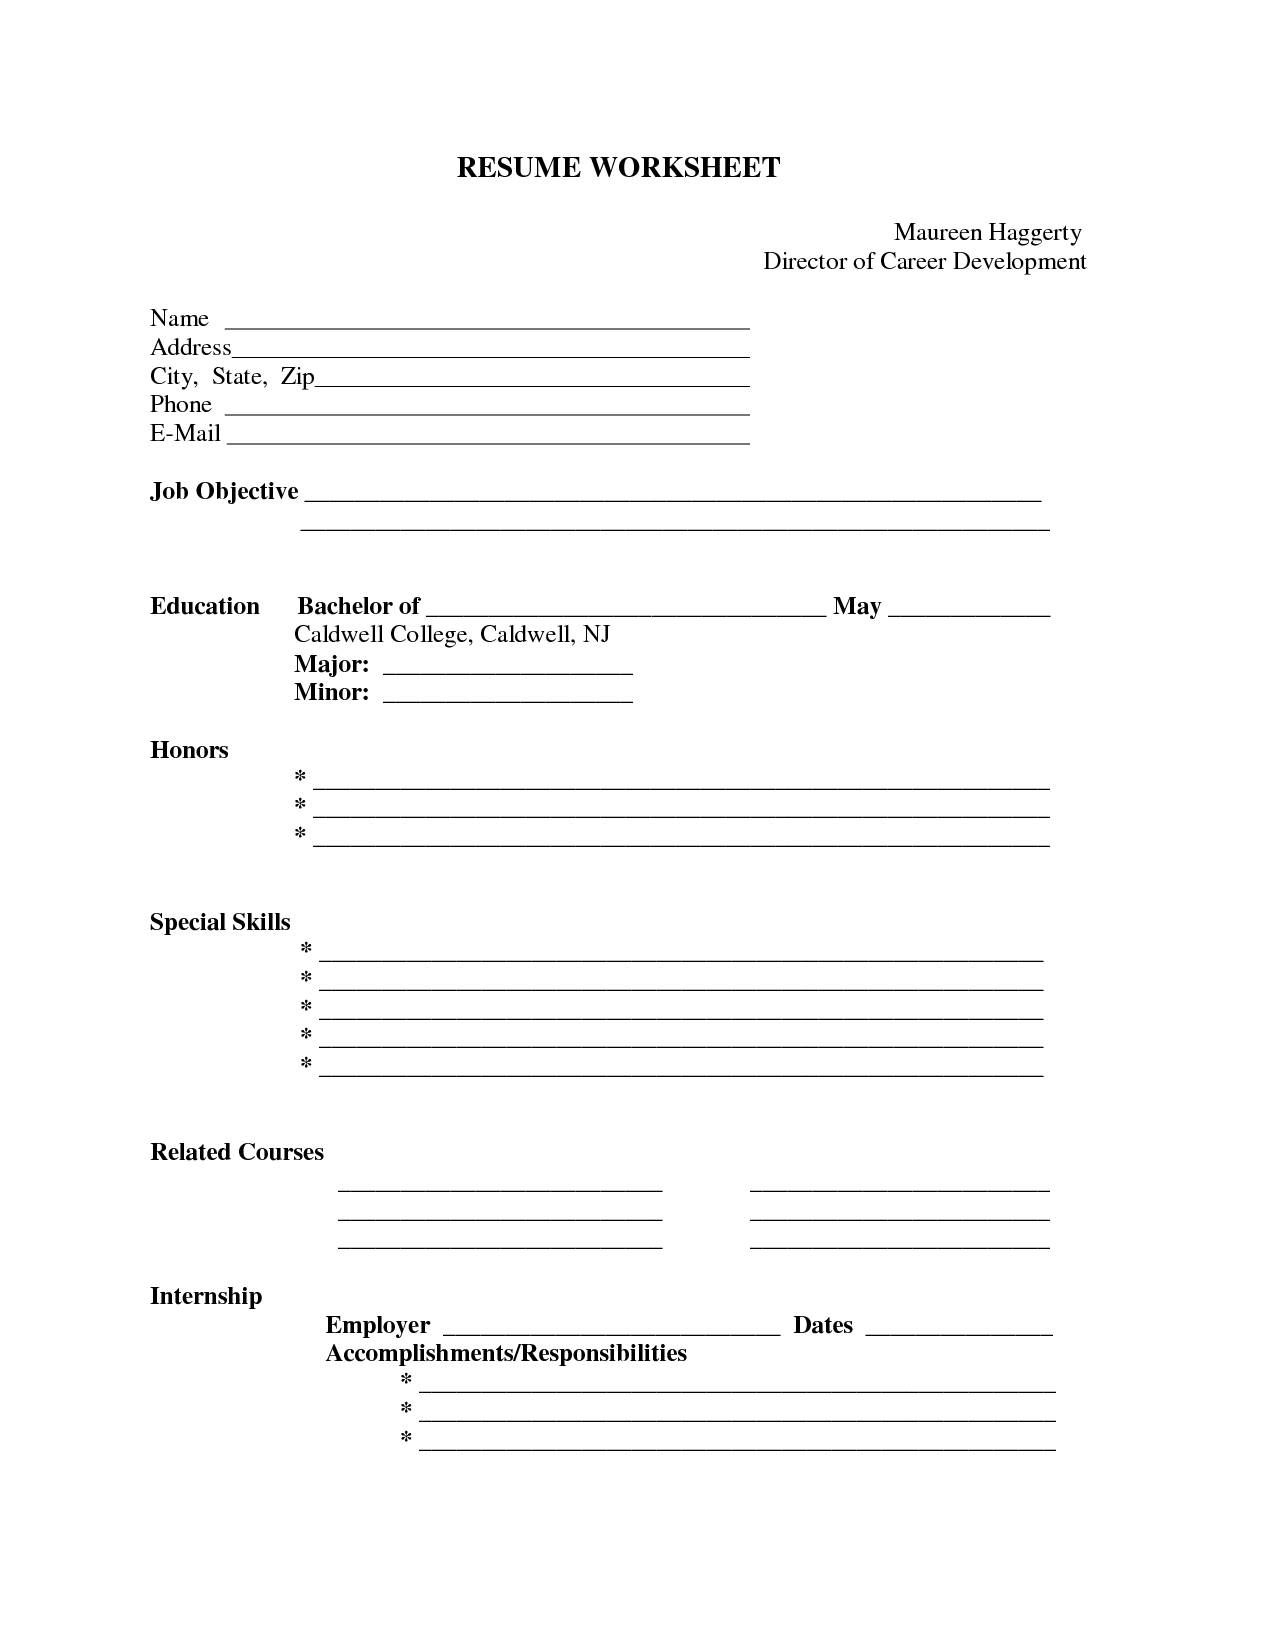 Pinresumejob On Resume Job | Free Printable Resume, Free